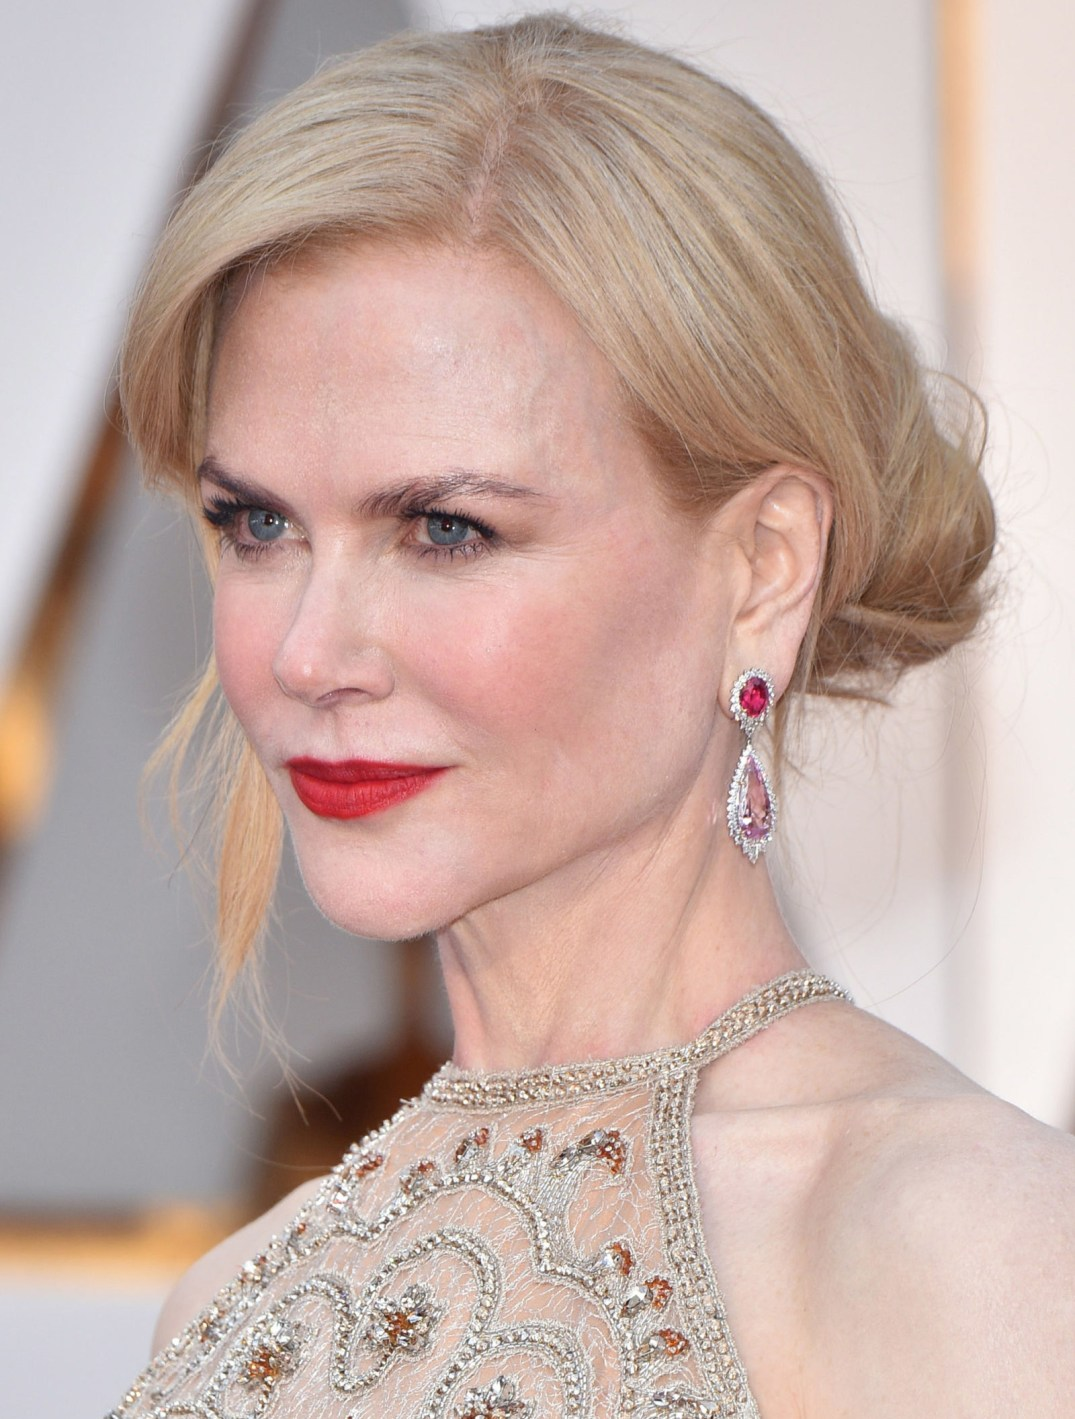 Nicole Kidman wears more than approx 119 carats of Harry Winston jewels. She added a bit of color with Winston Cluster Diamond and Spinel Drop Earrings in Platinum and 18k Yellow Gold, Vintage 1963 Winston Cluster Diamond Bracelet in Platinum; Splash Diamond Bracelet in Platinum and Winston Cluster Pear-Shaped Diamond Ring in Platinum. PC- Harper's Bazaar